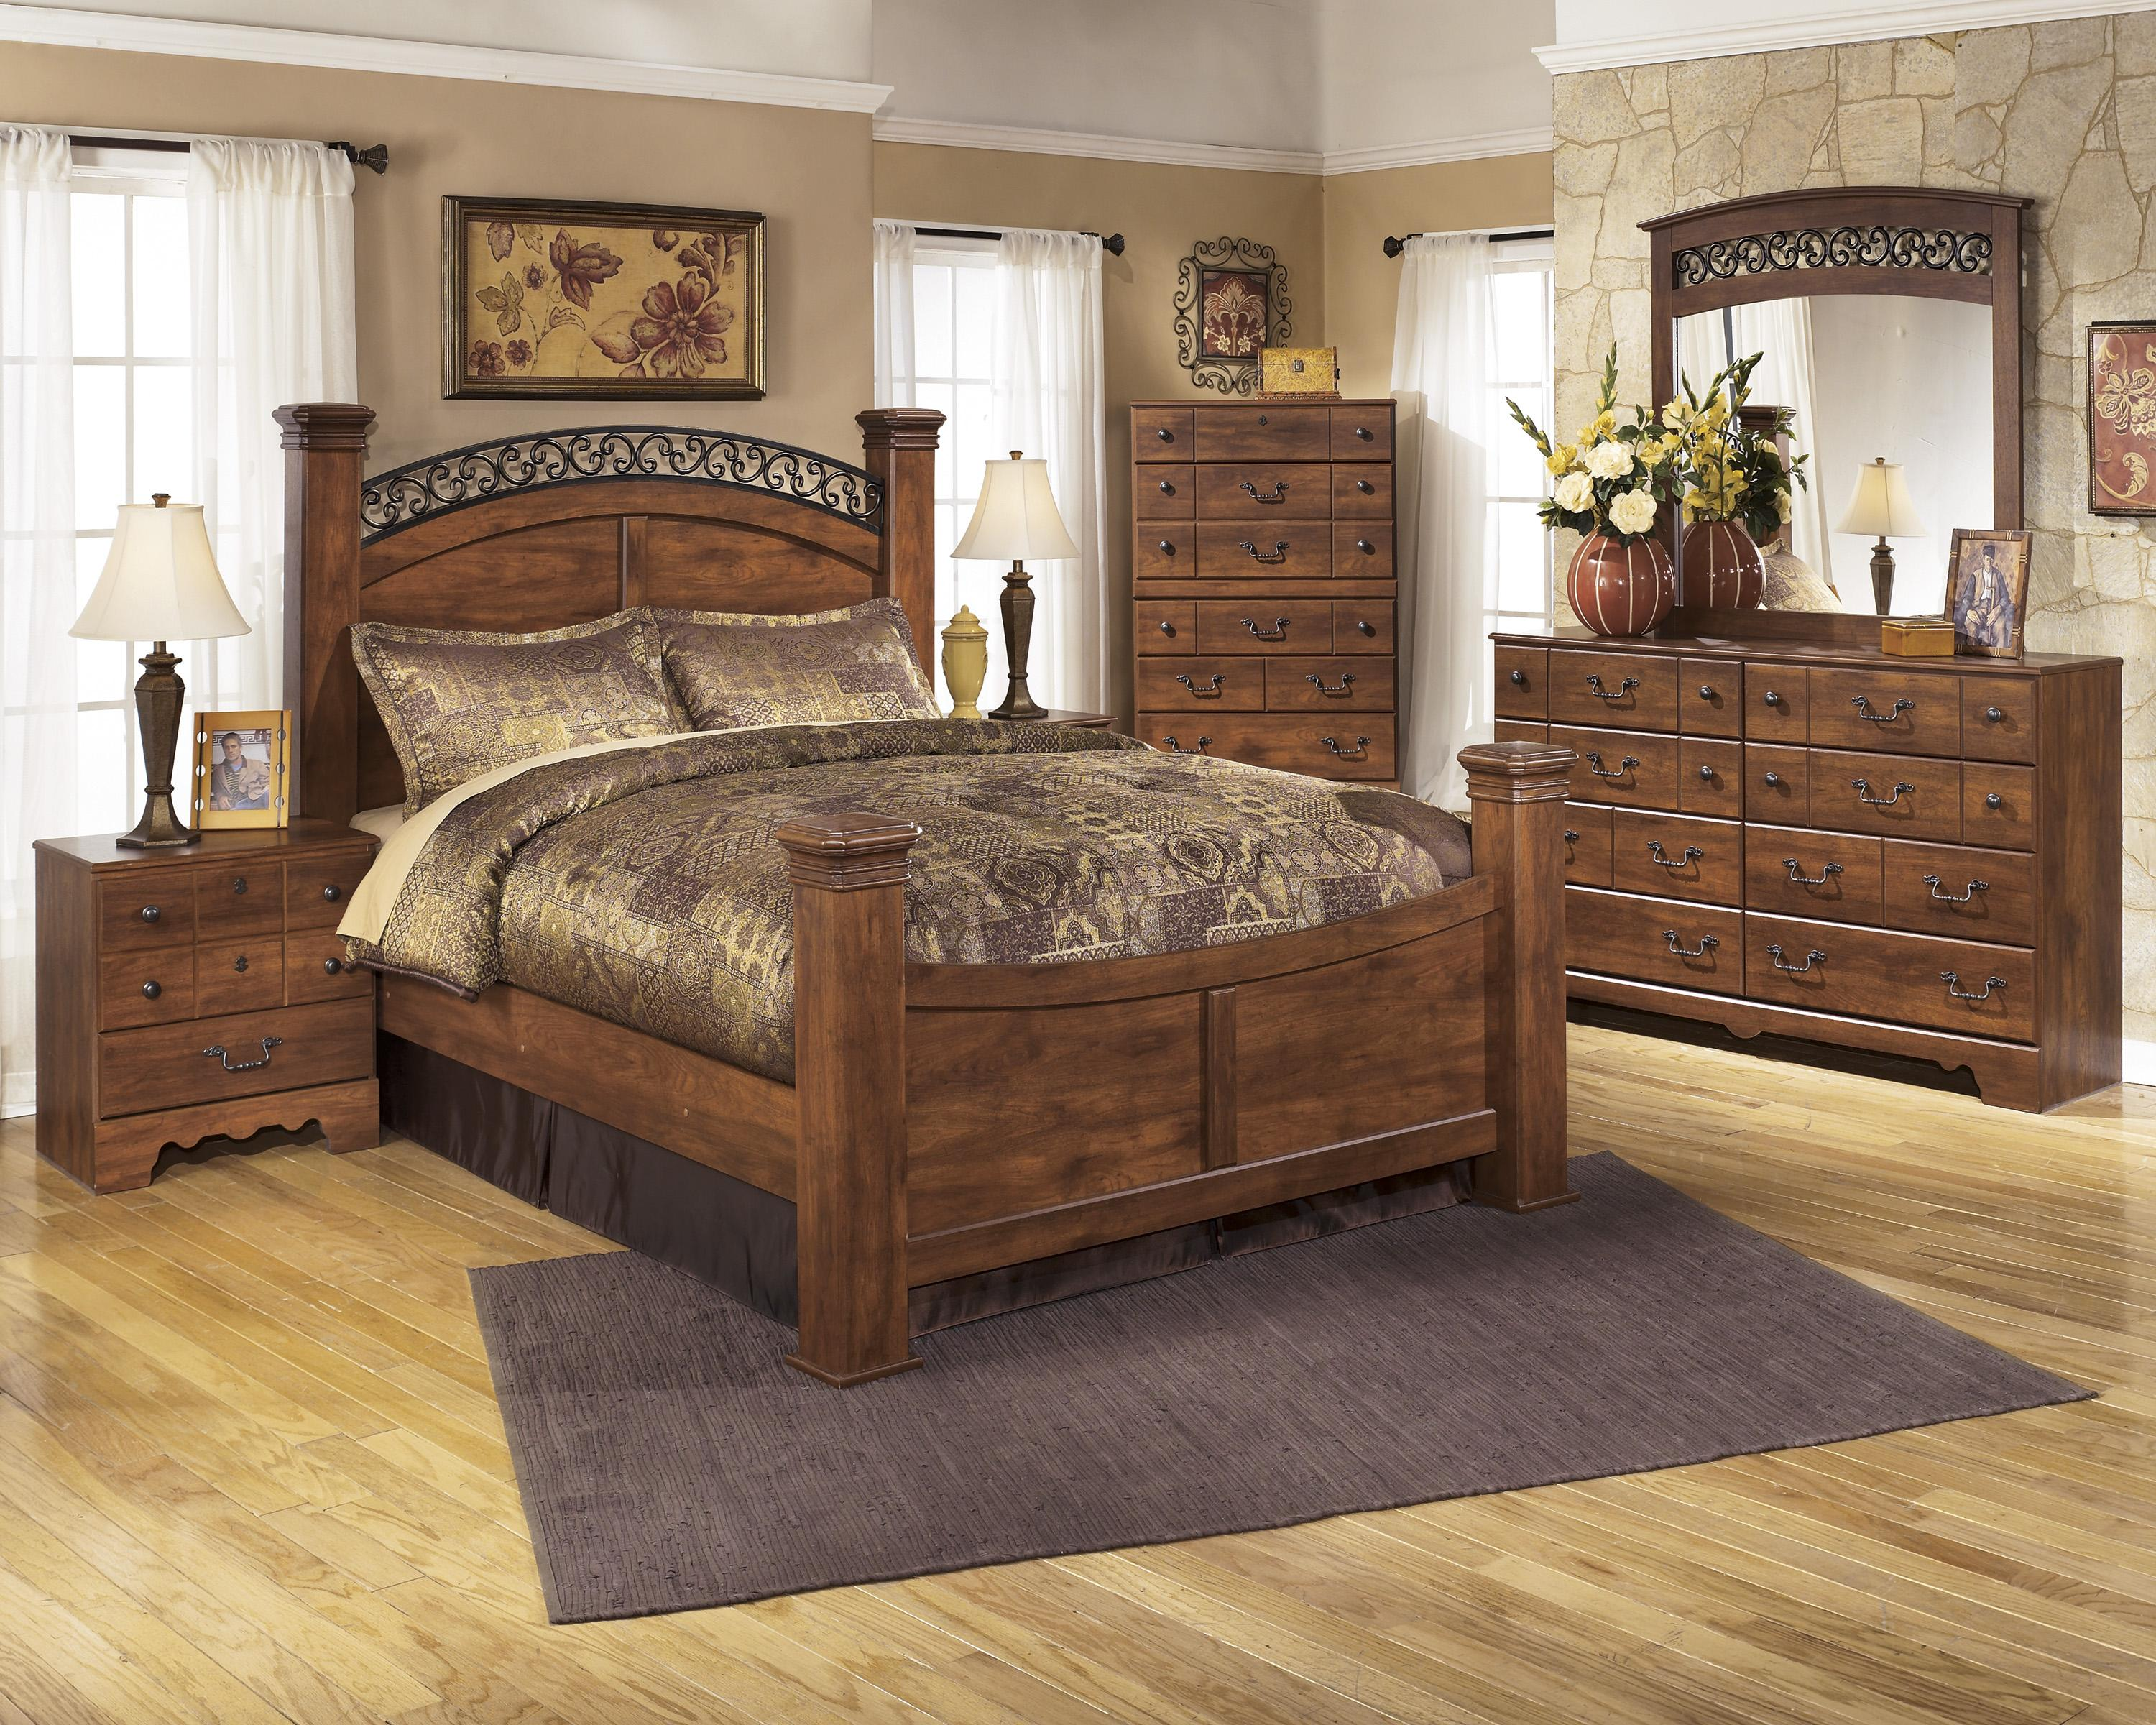 Ashley Signature Design Timberline Queen Bedroom Group Dunk Bright Furniture Bedroom Groups